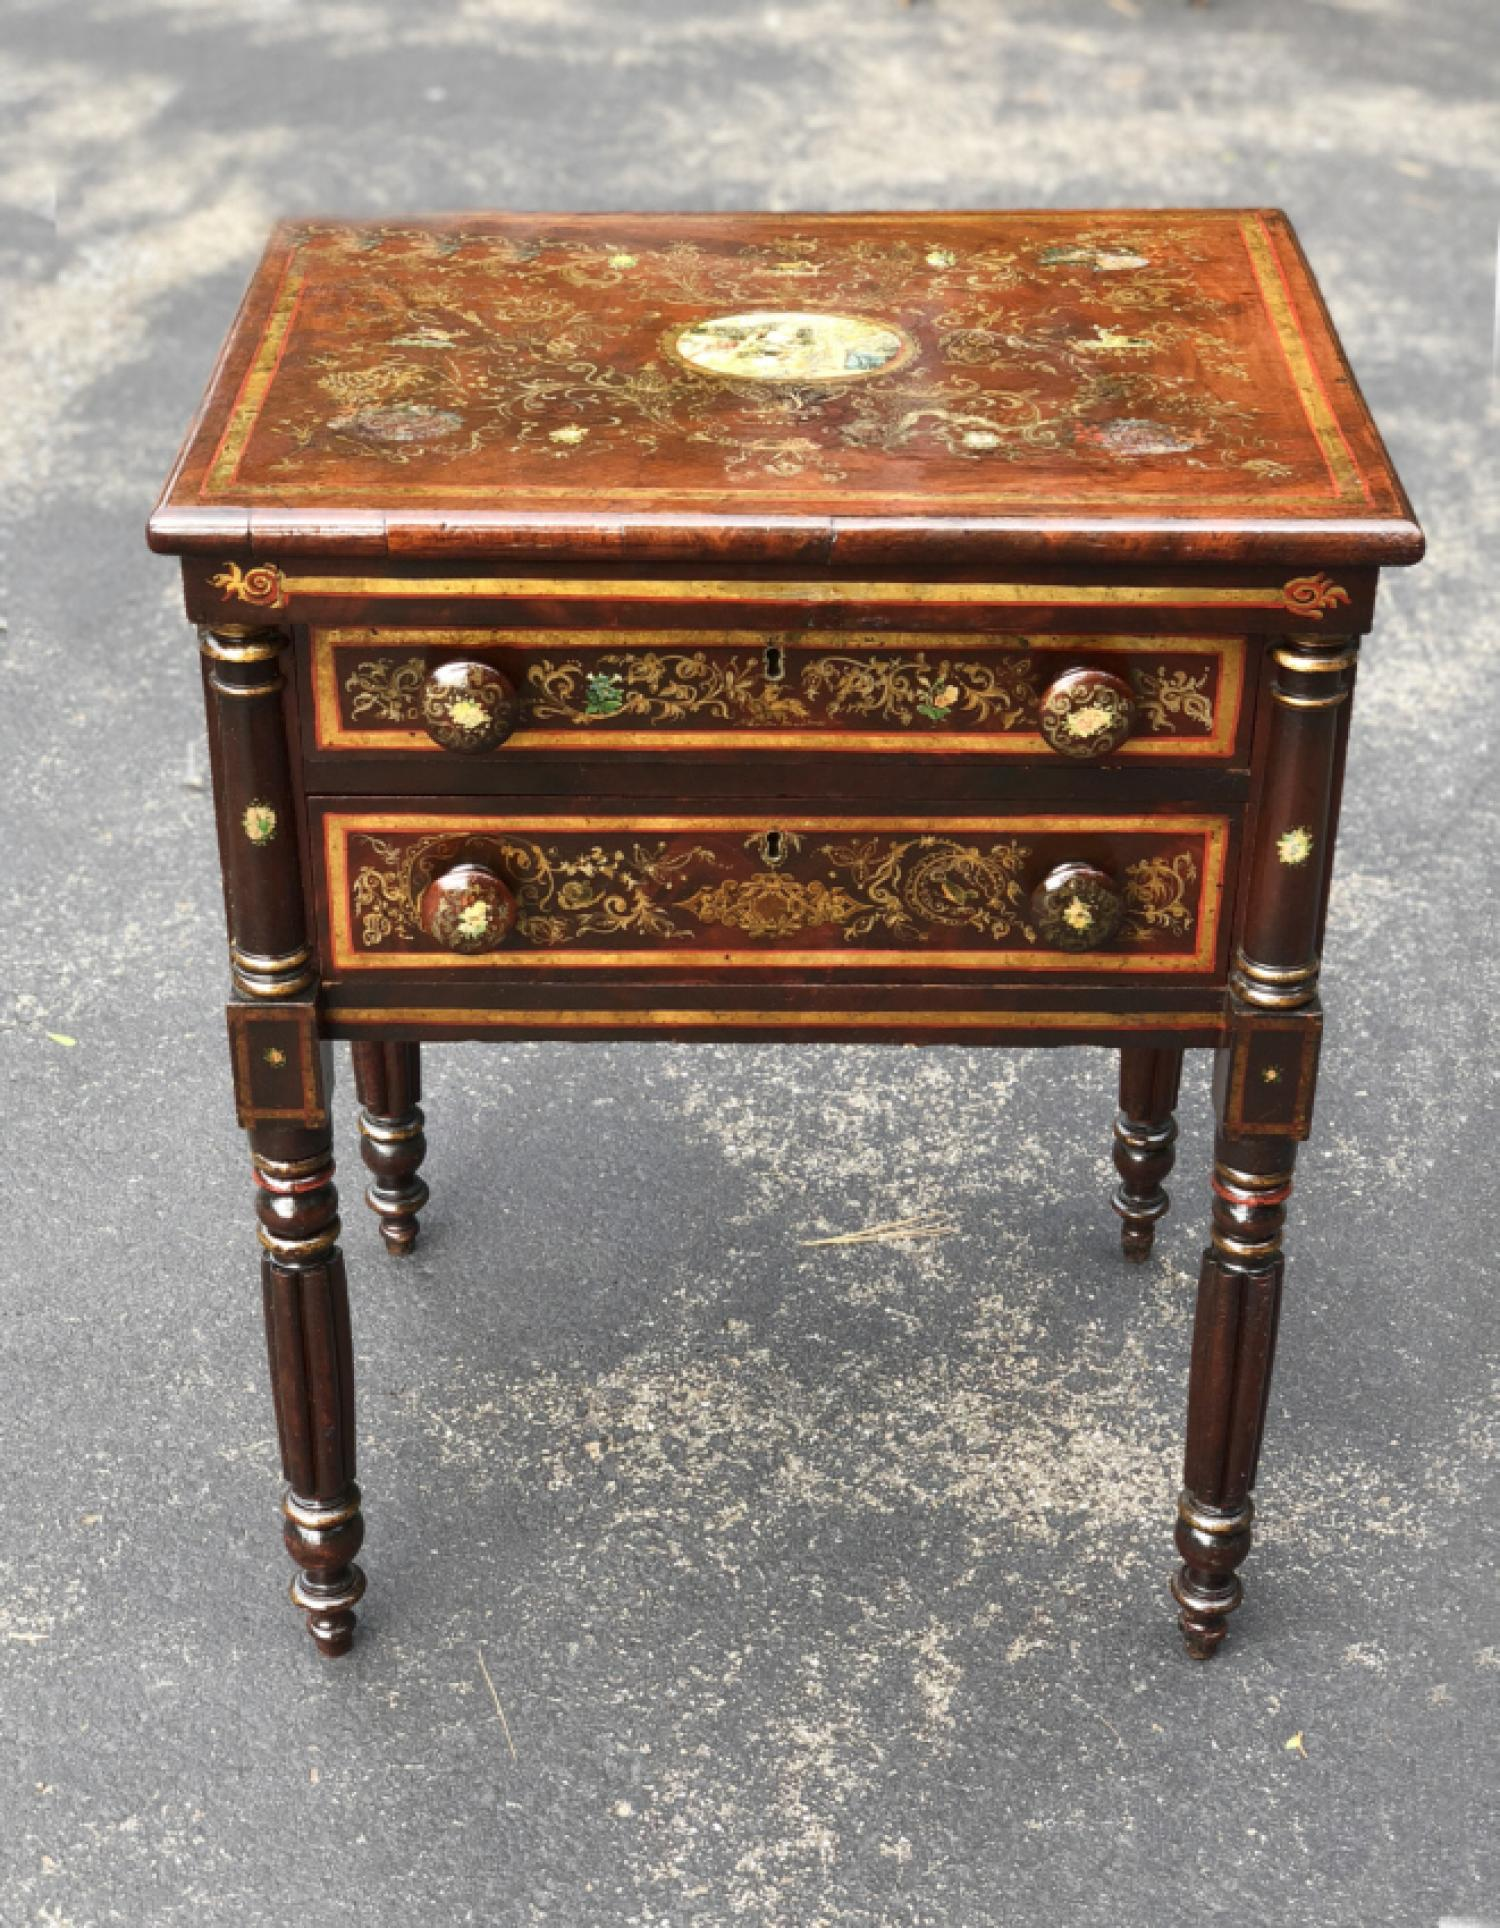 New York mahogany stand with painted surface c1830